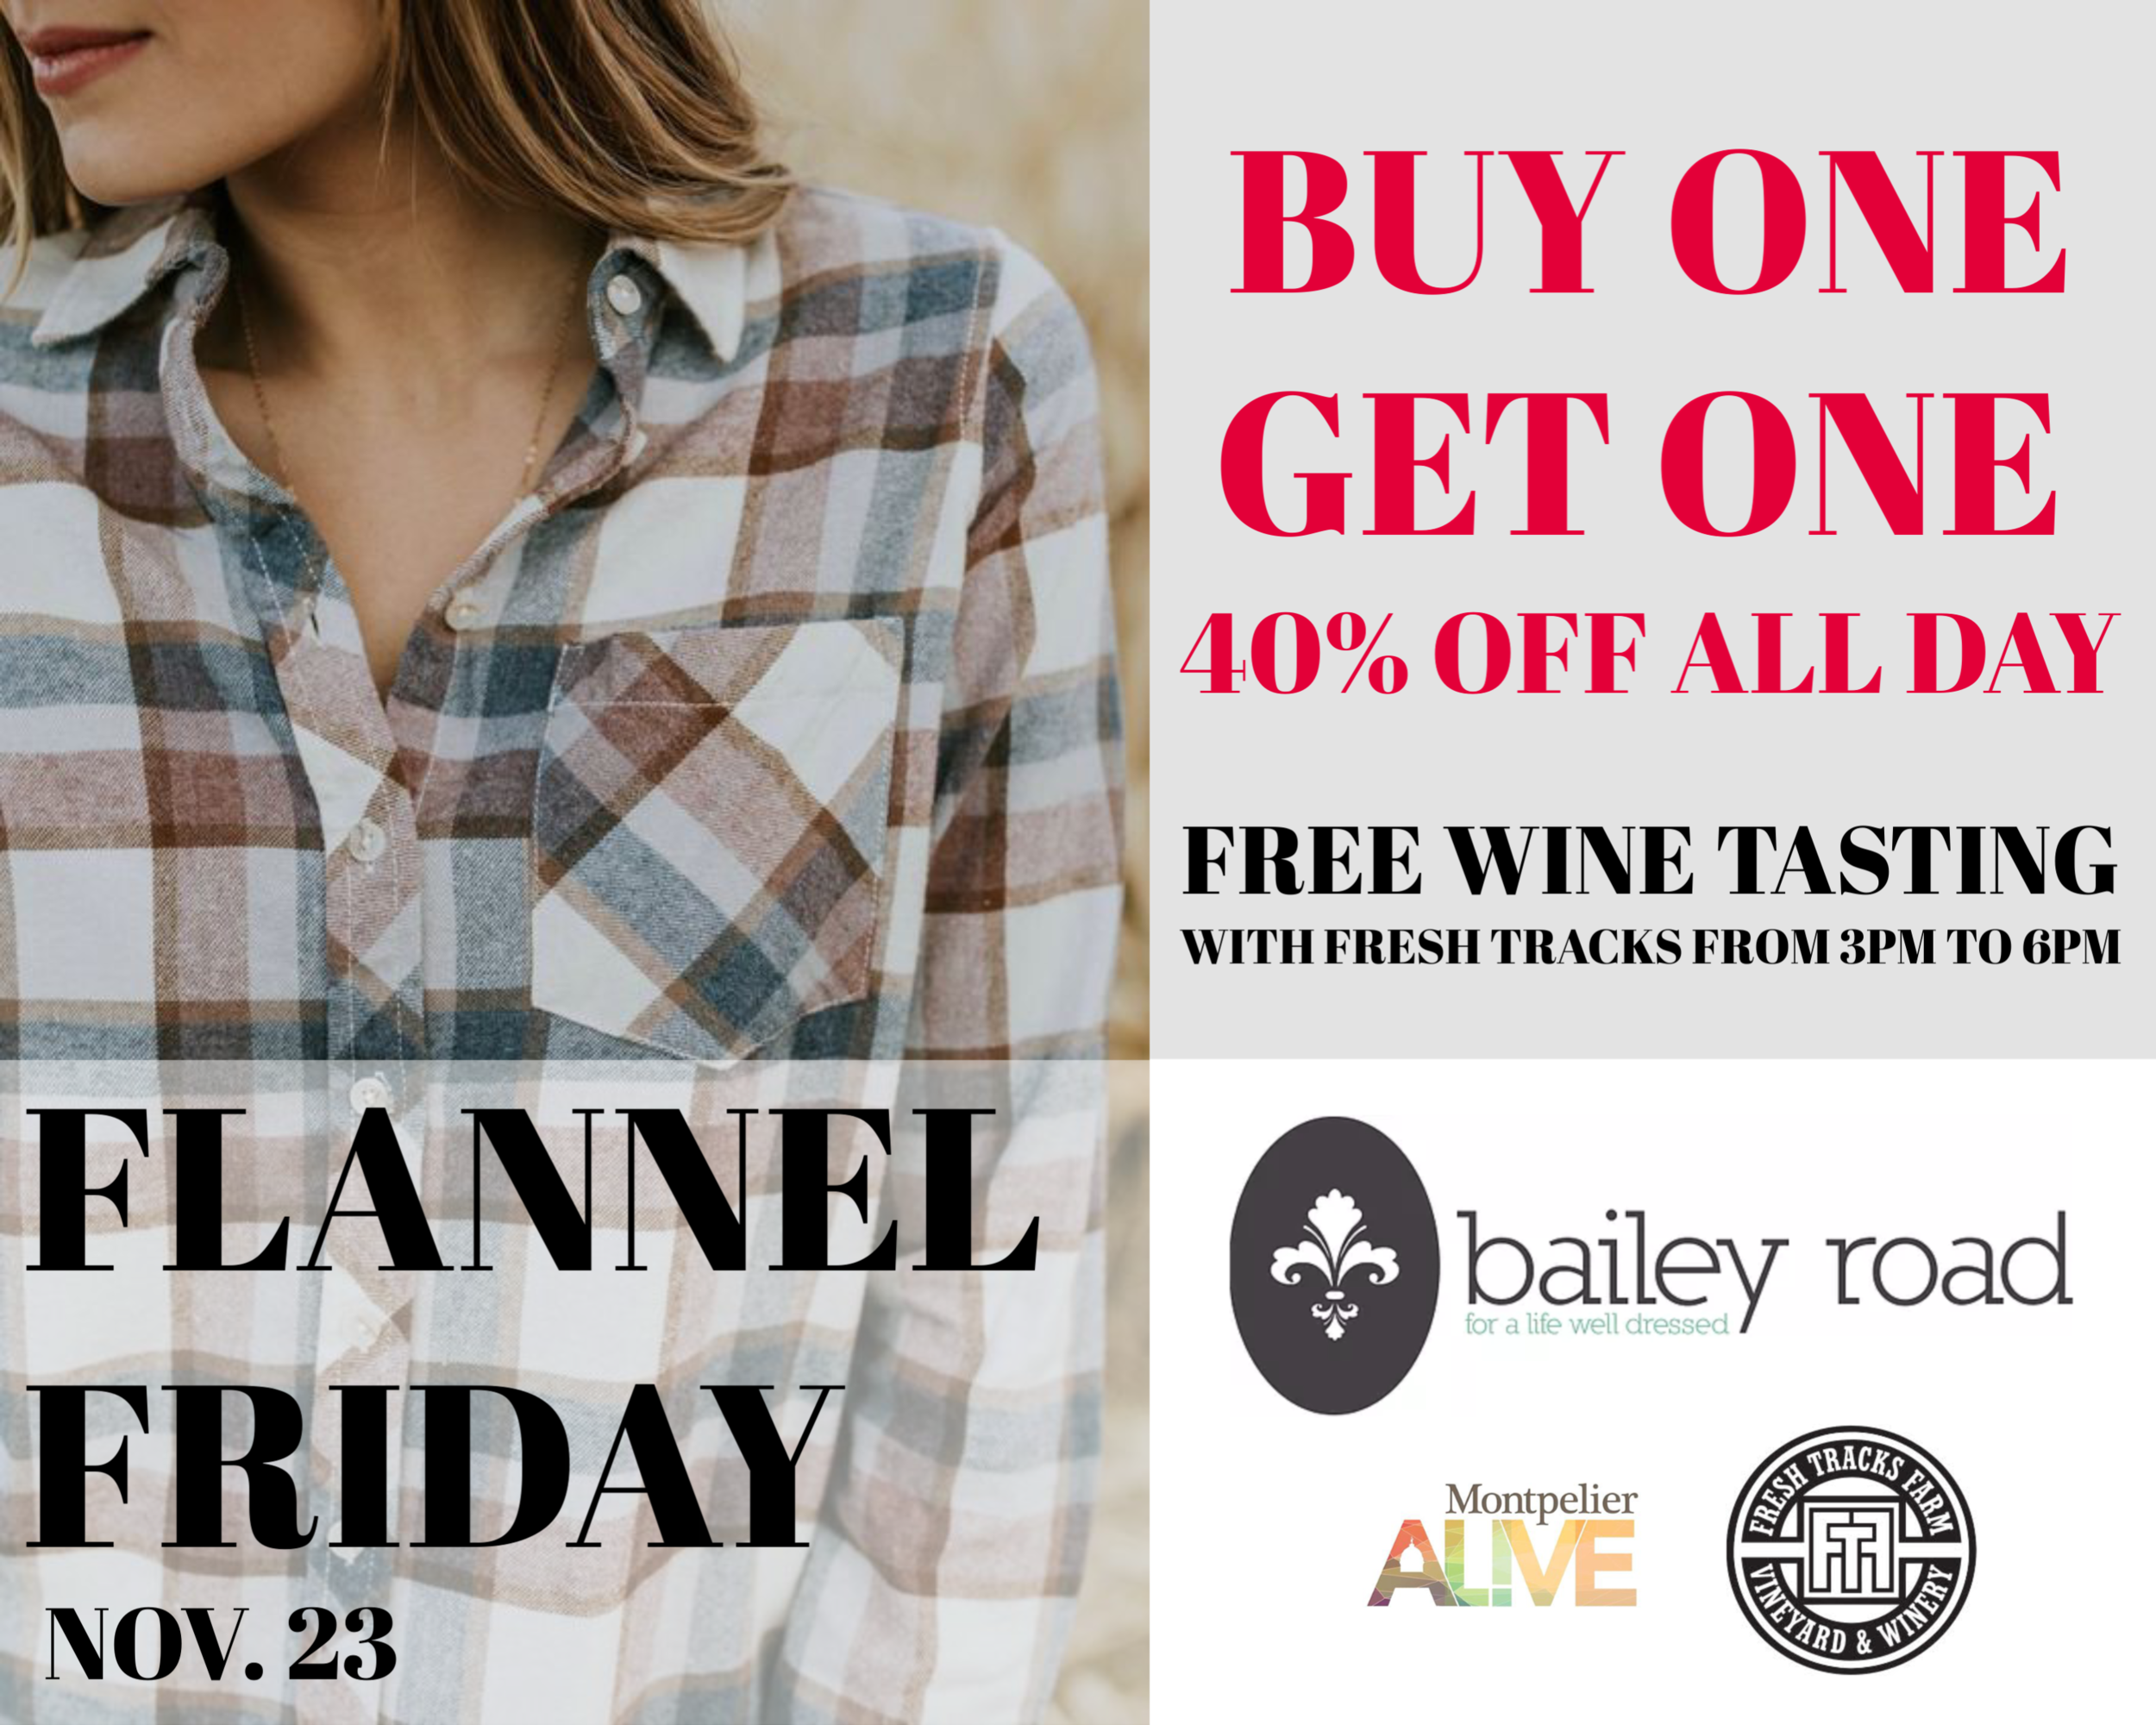 Flannel Friday at Bailey Road in downtown Montpelier, Vermont.  SALE.